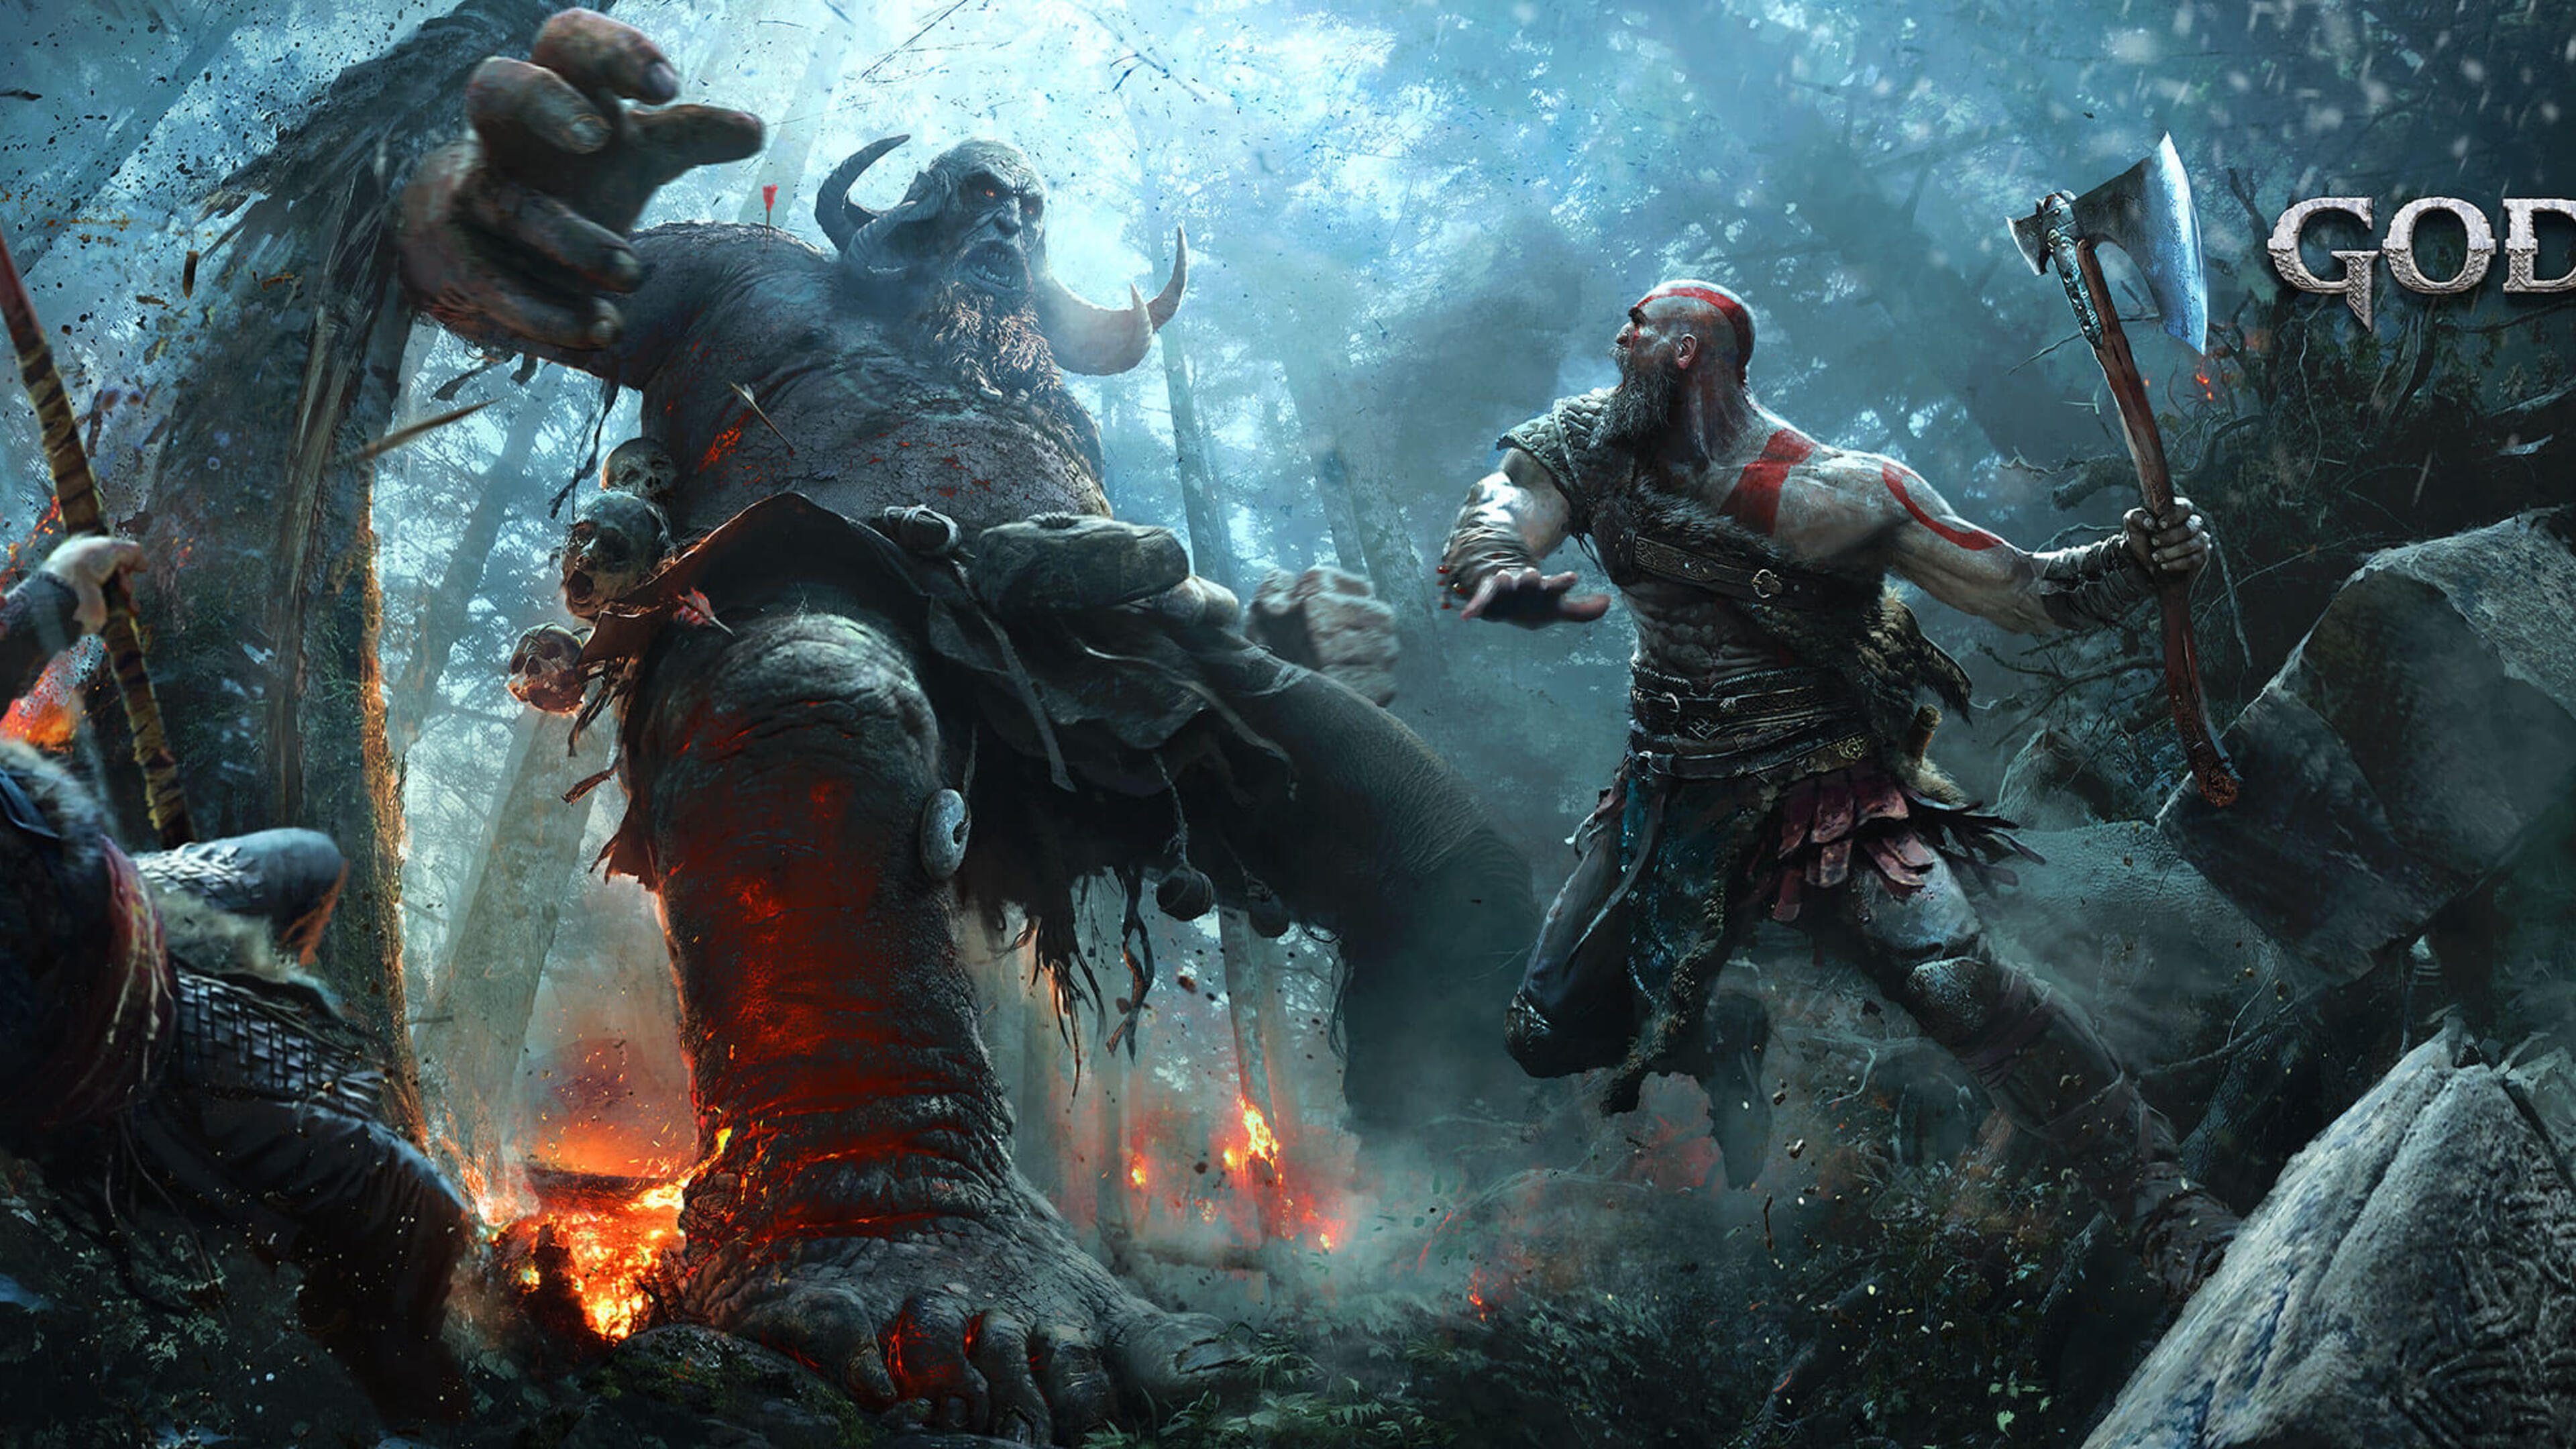 3840x2160 god of war 2017 4k hd 4k wallpapers images - 4k wallpaper of god ...